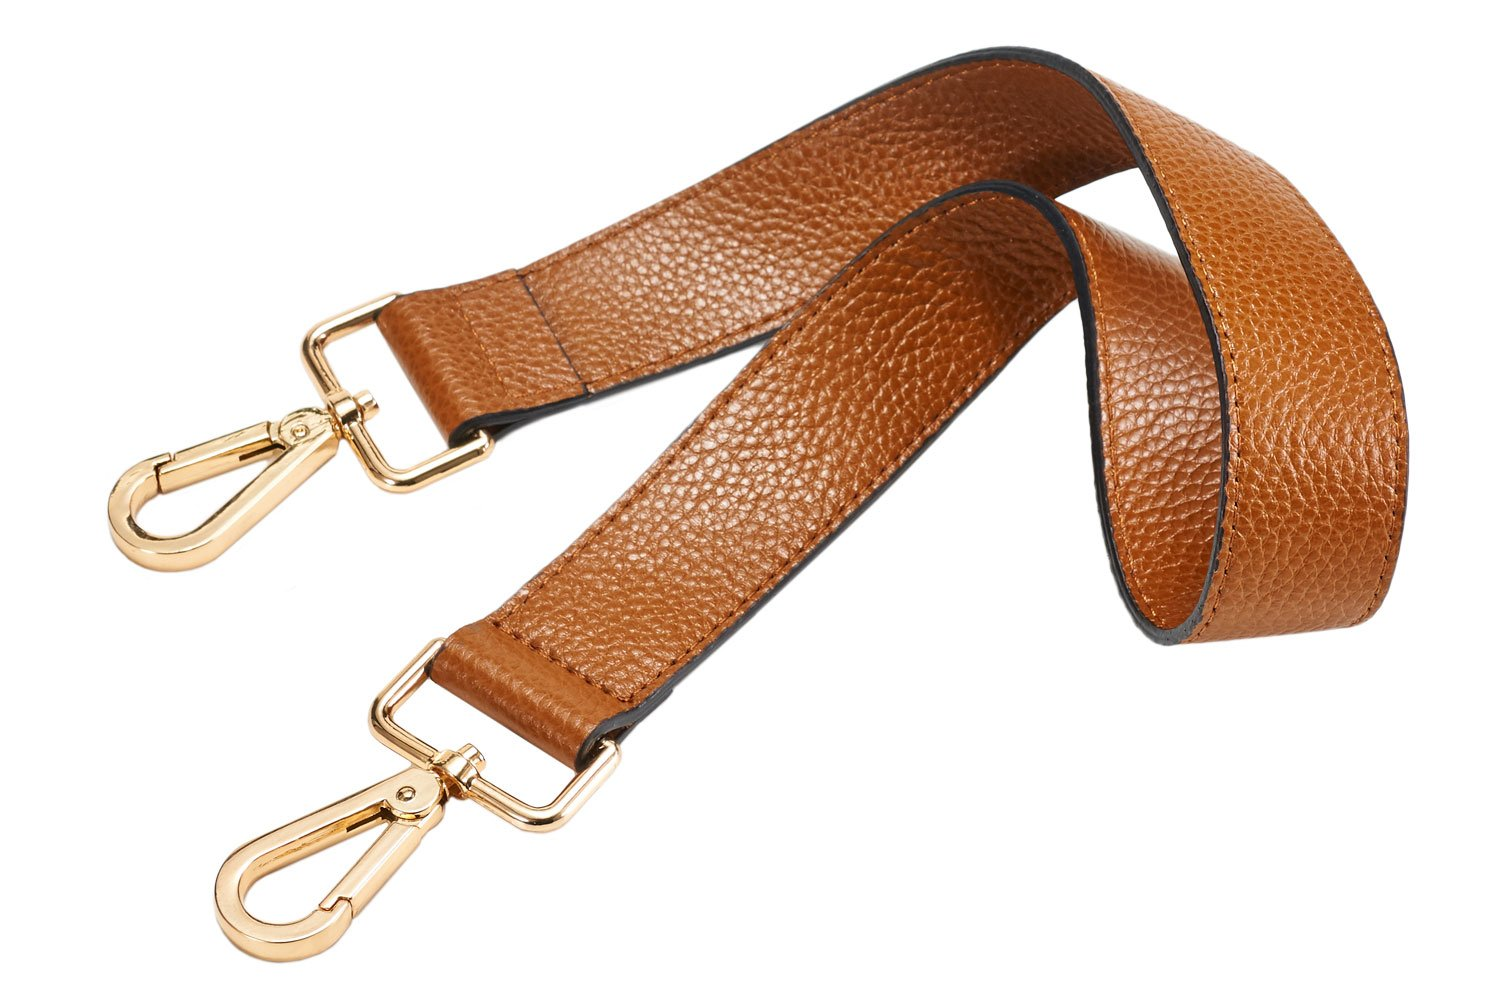 Authentic Leather Replacement Shoulder Strap, Brass Tone (Gold Tone) Metal Buckles, 1.18''x24.8''(WL) (Brown)